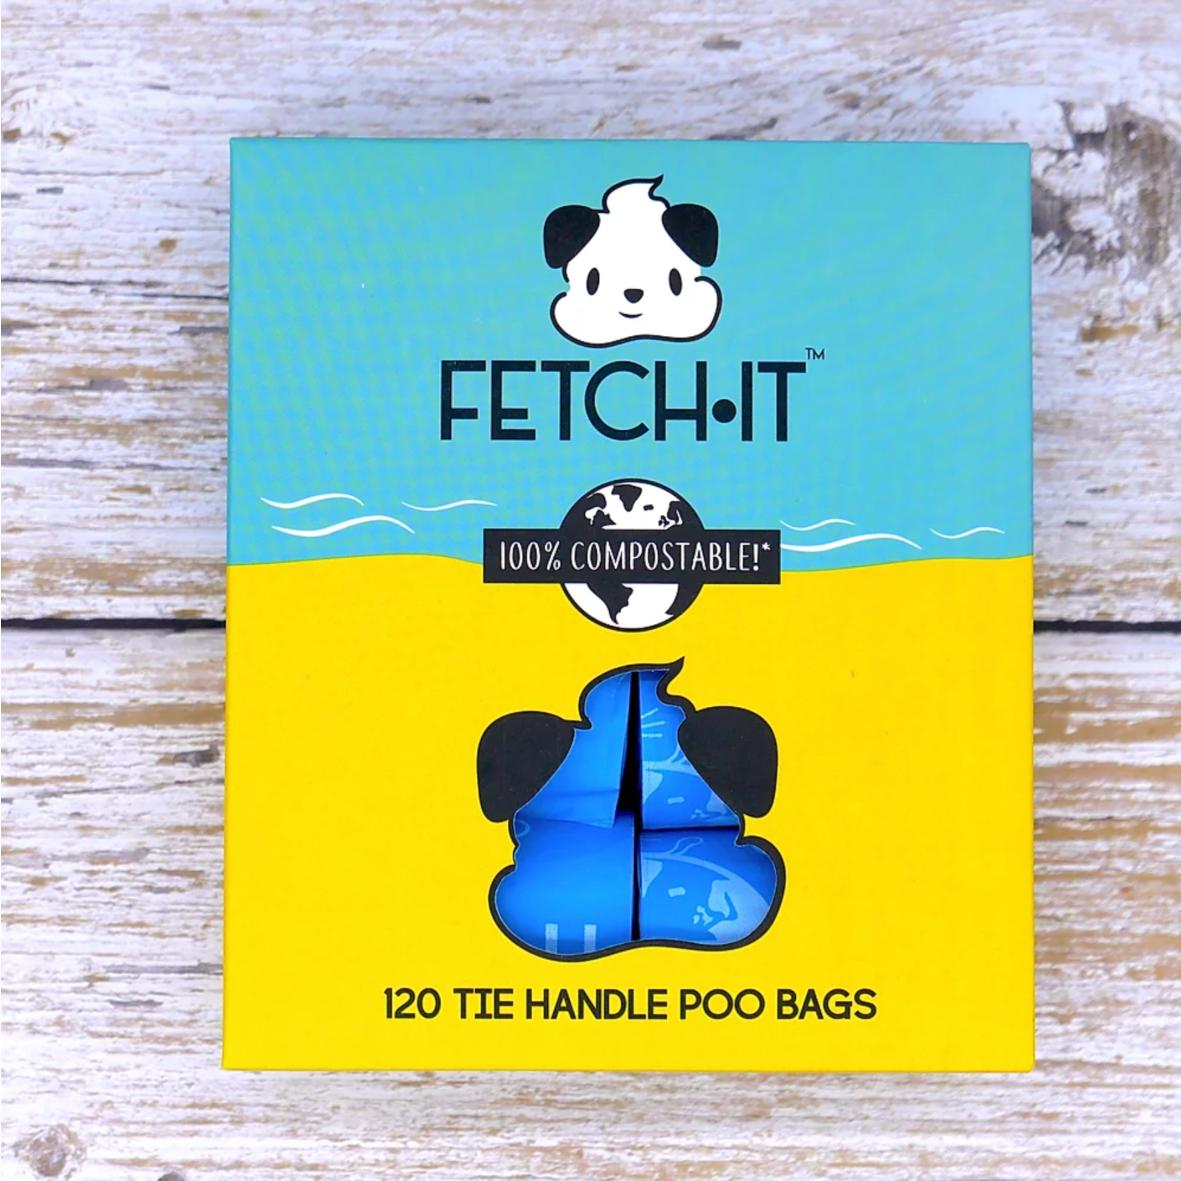 FETCHIT Poo Bags with Tie Handles 120pcs (100% Compostable)